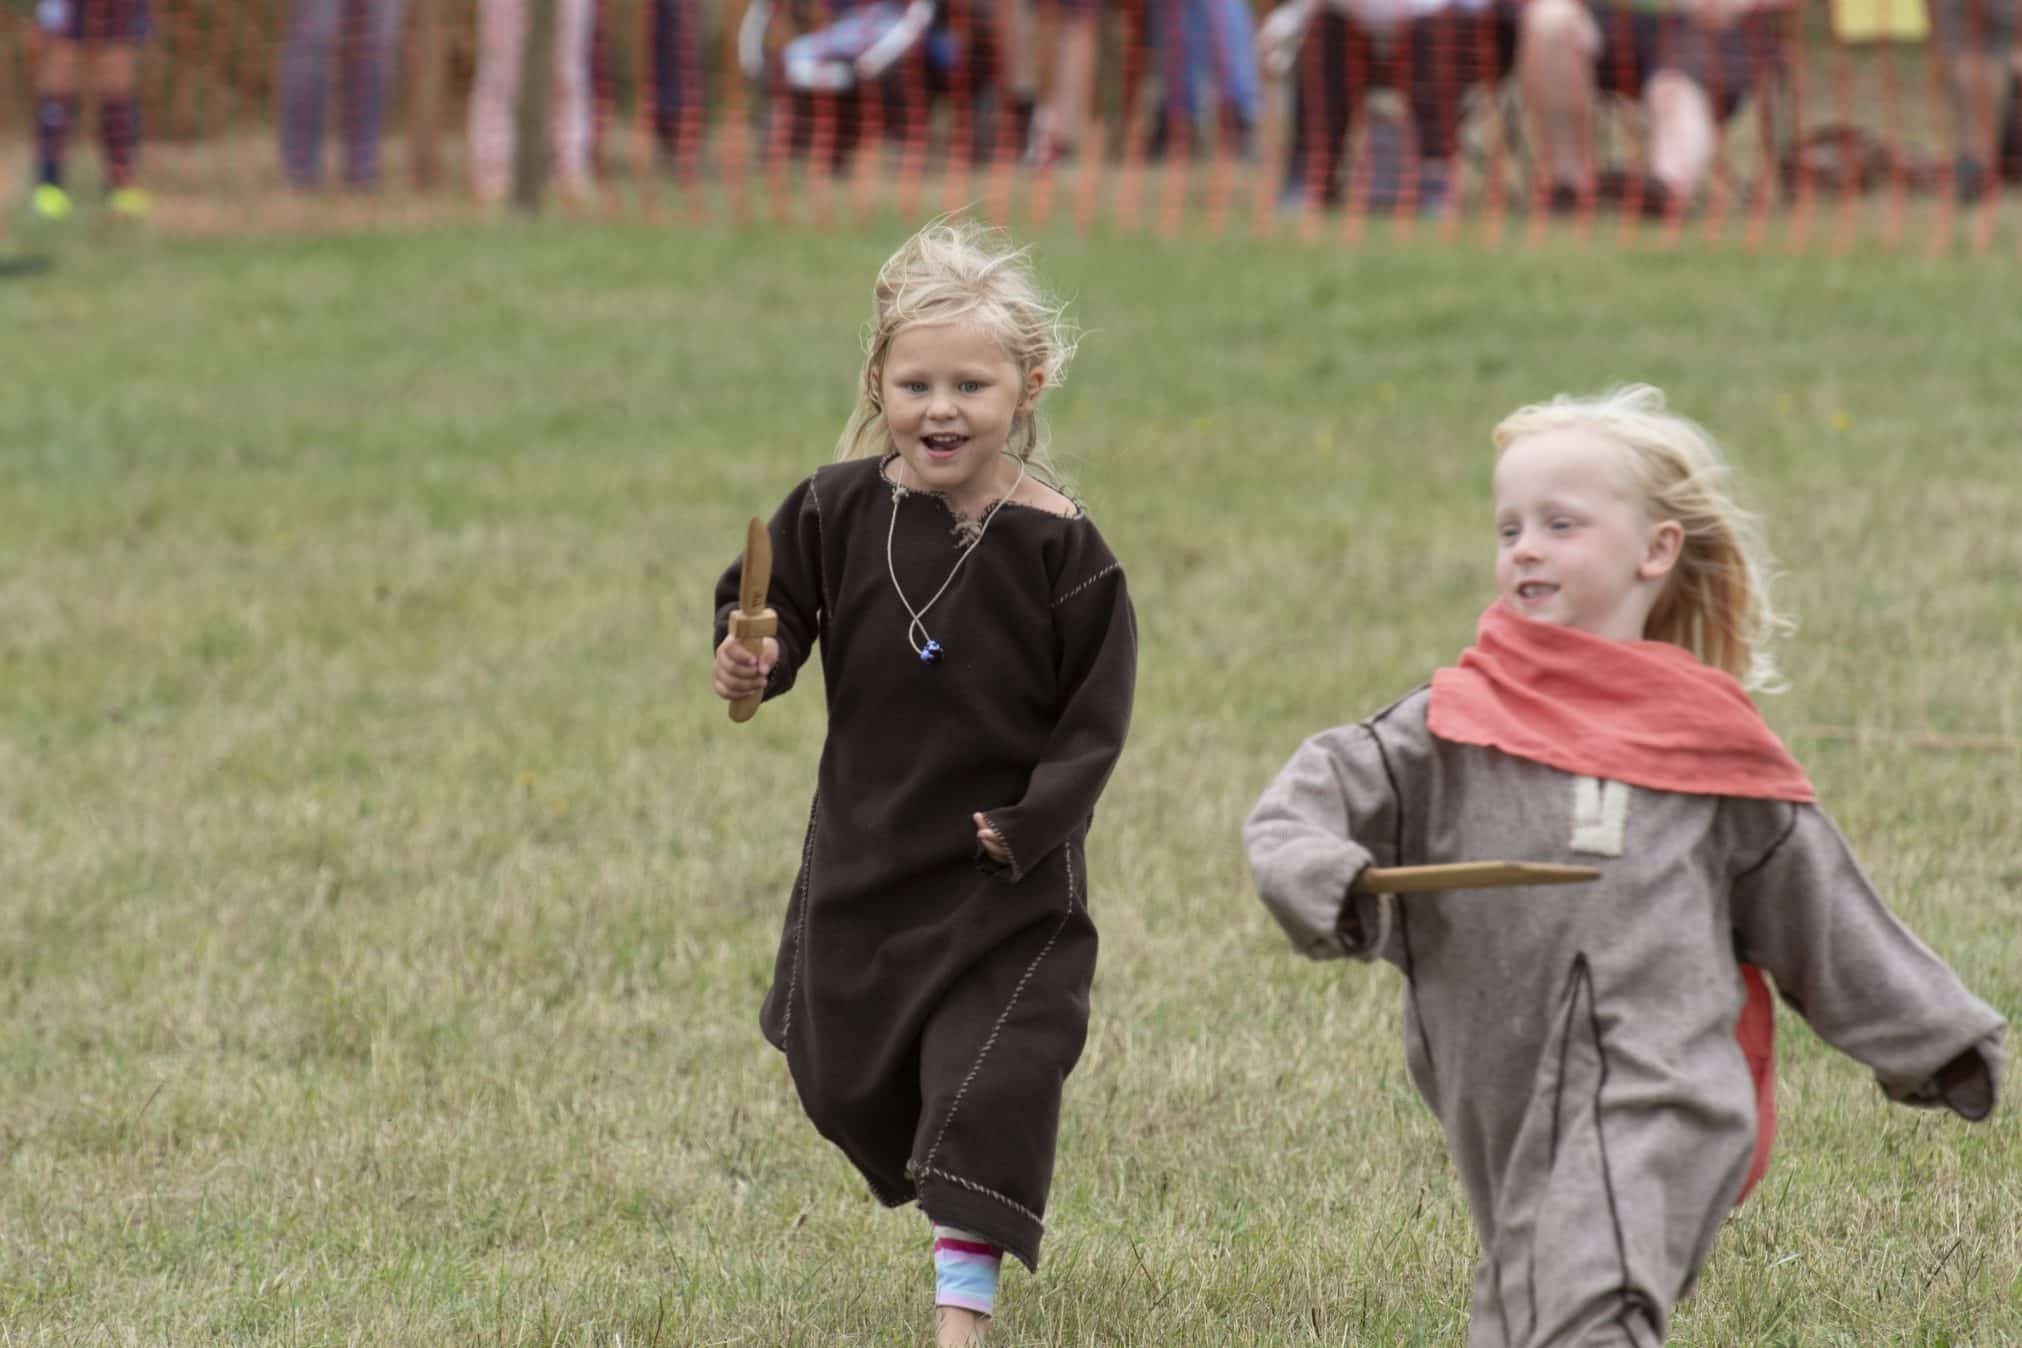 Two Viking girls running at Green Fayre, Beacon Country Park